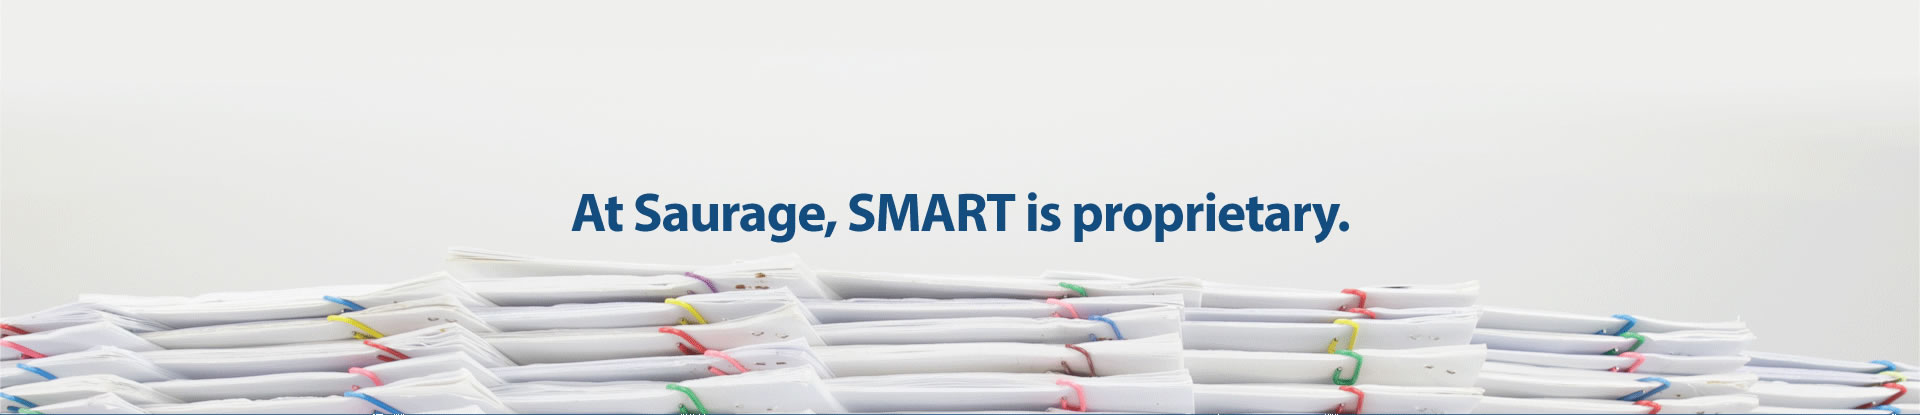 At Saurage, SMART is proprietary.